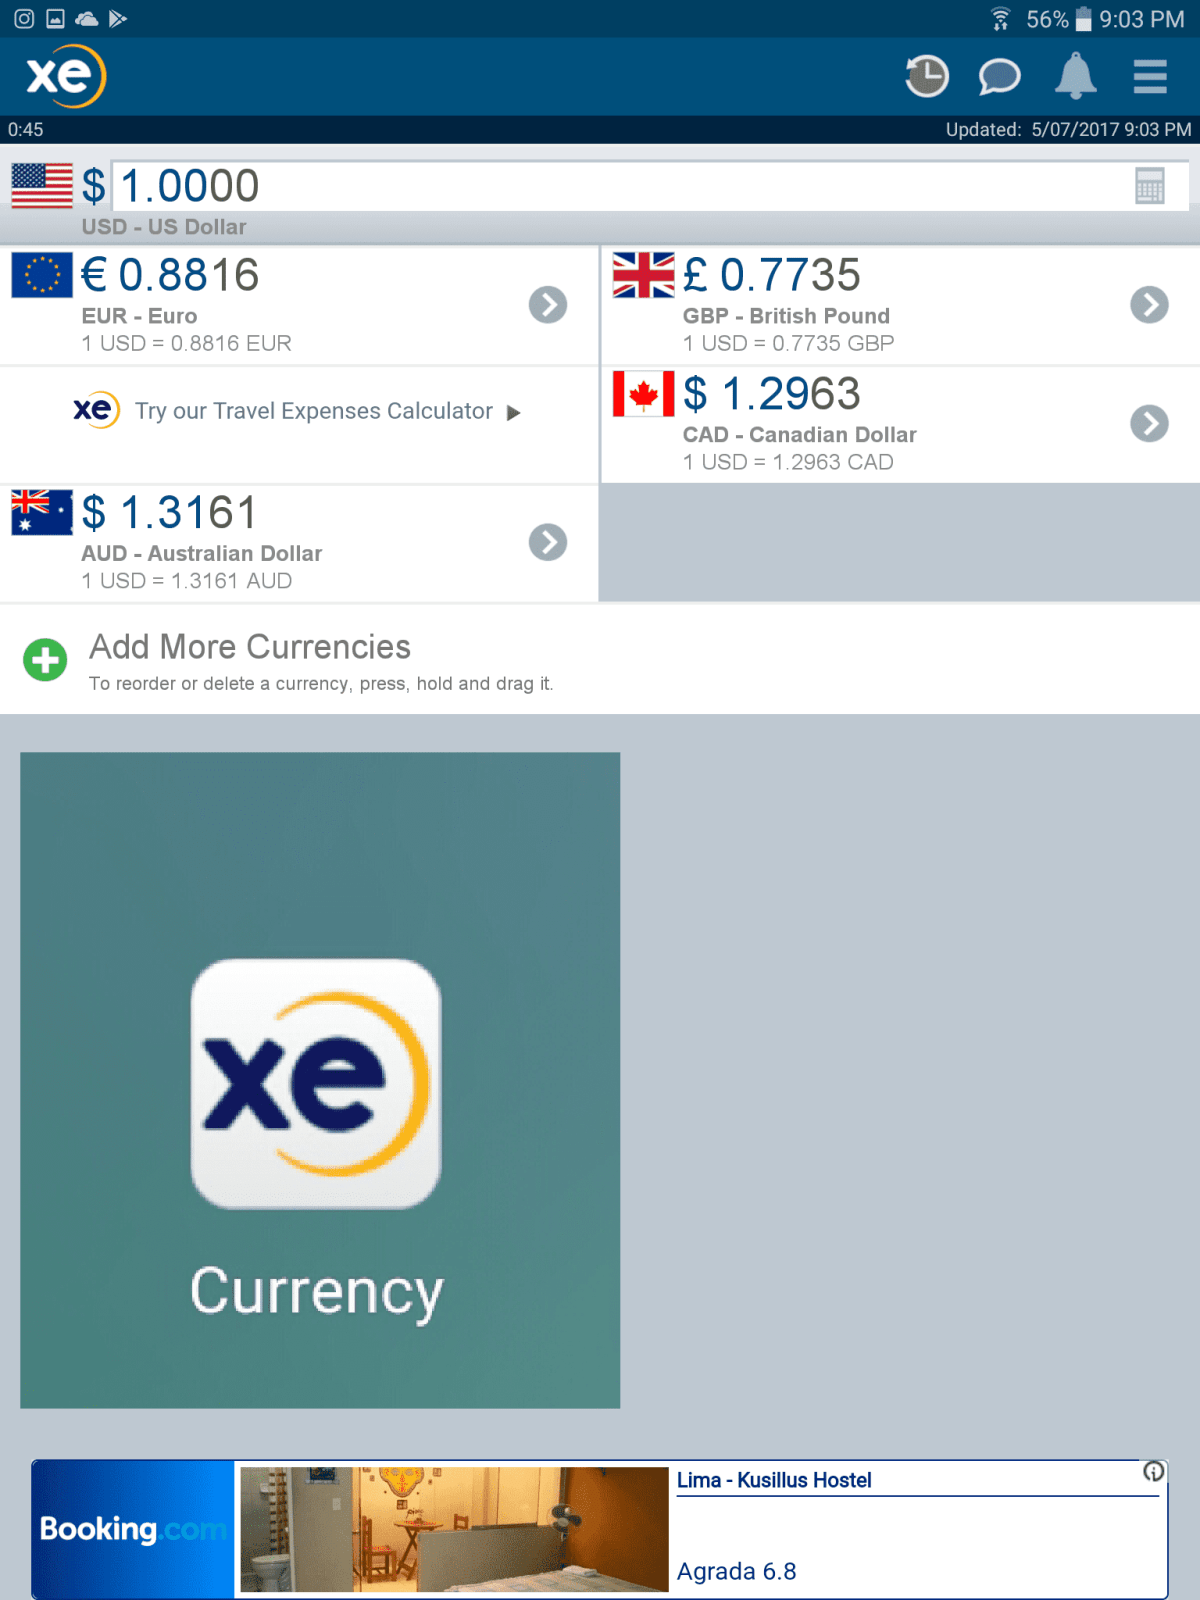 The best apps for travelers needs a currency exchange